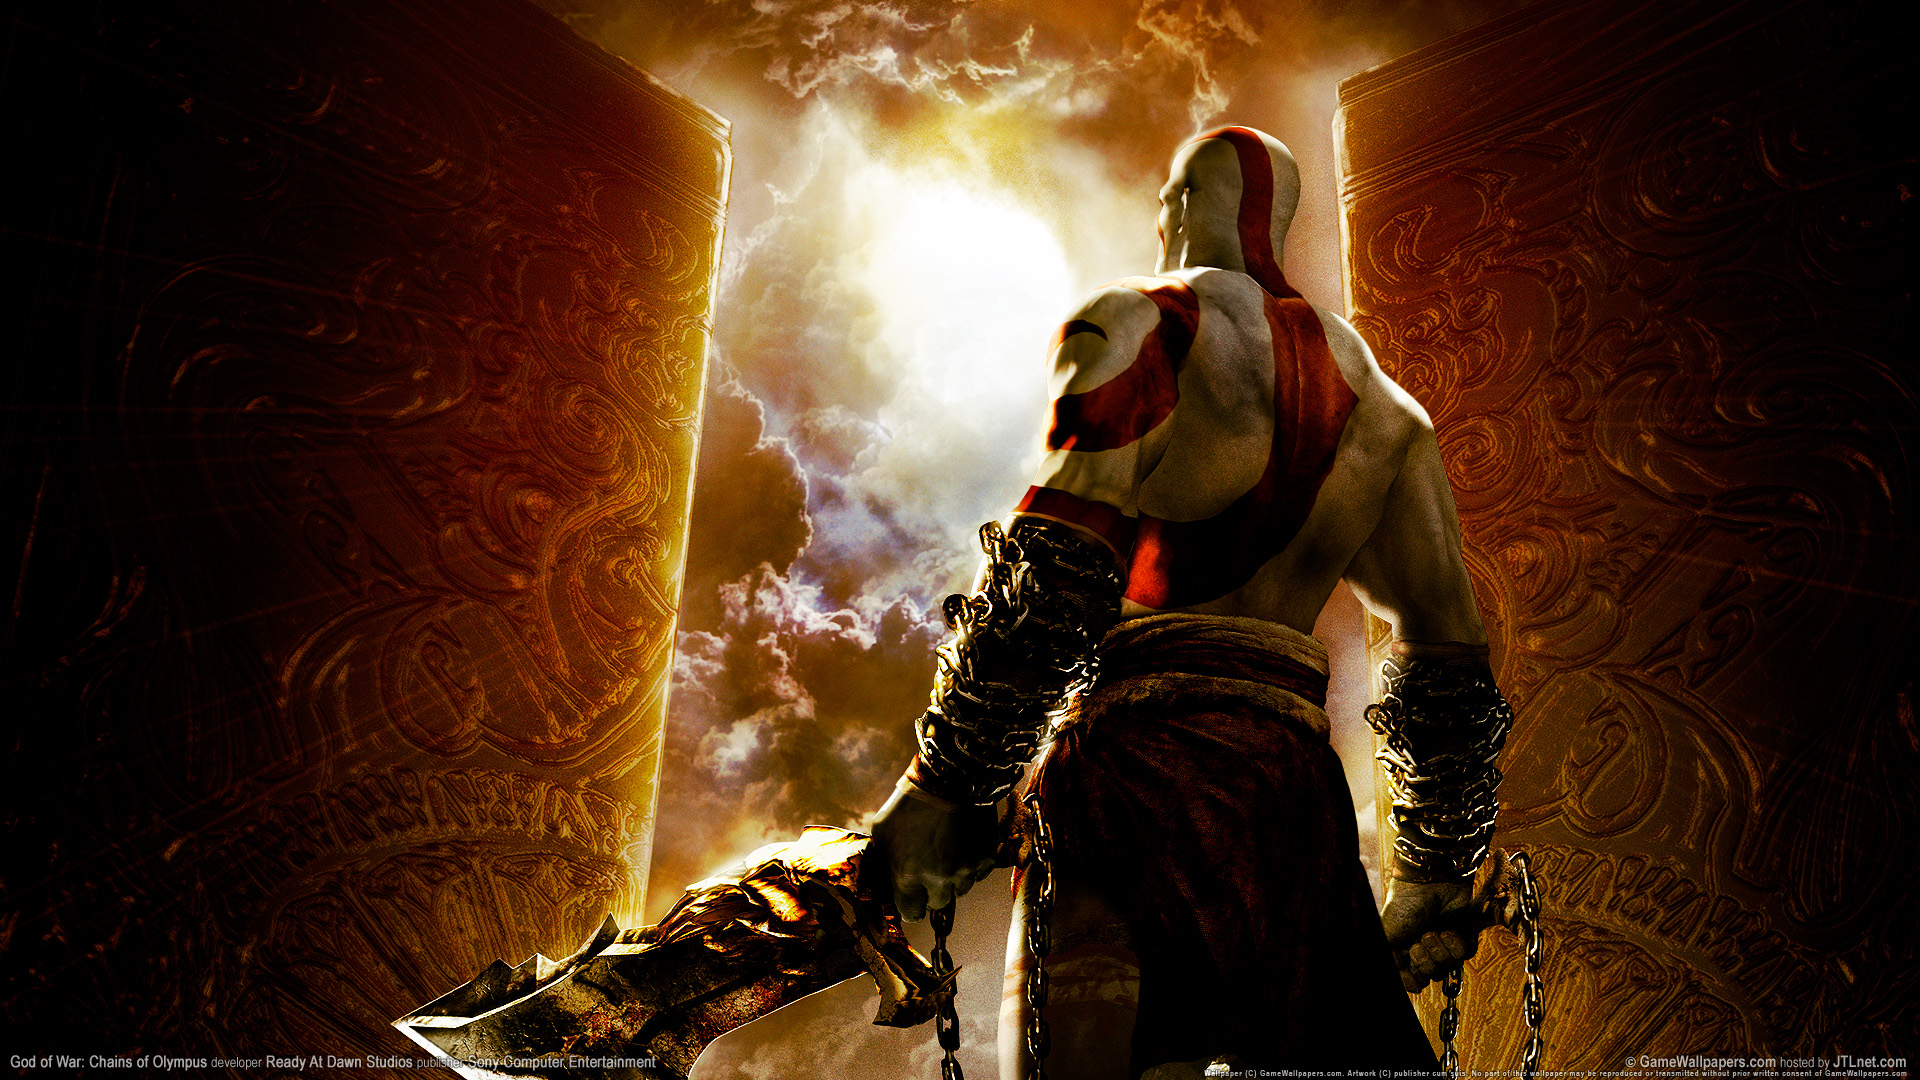 god of war chains of olympus HDjpg 1920x1080